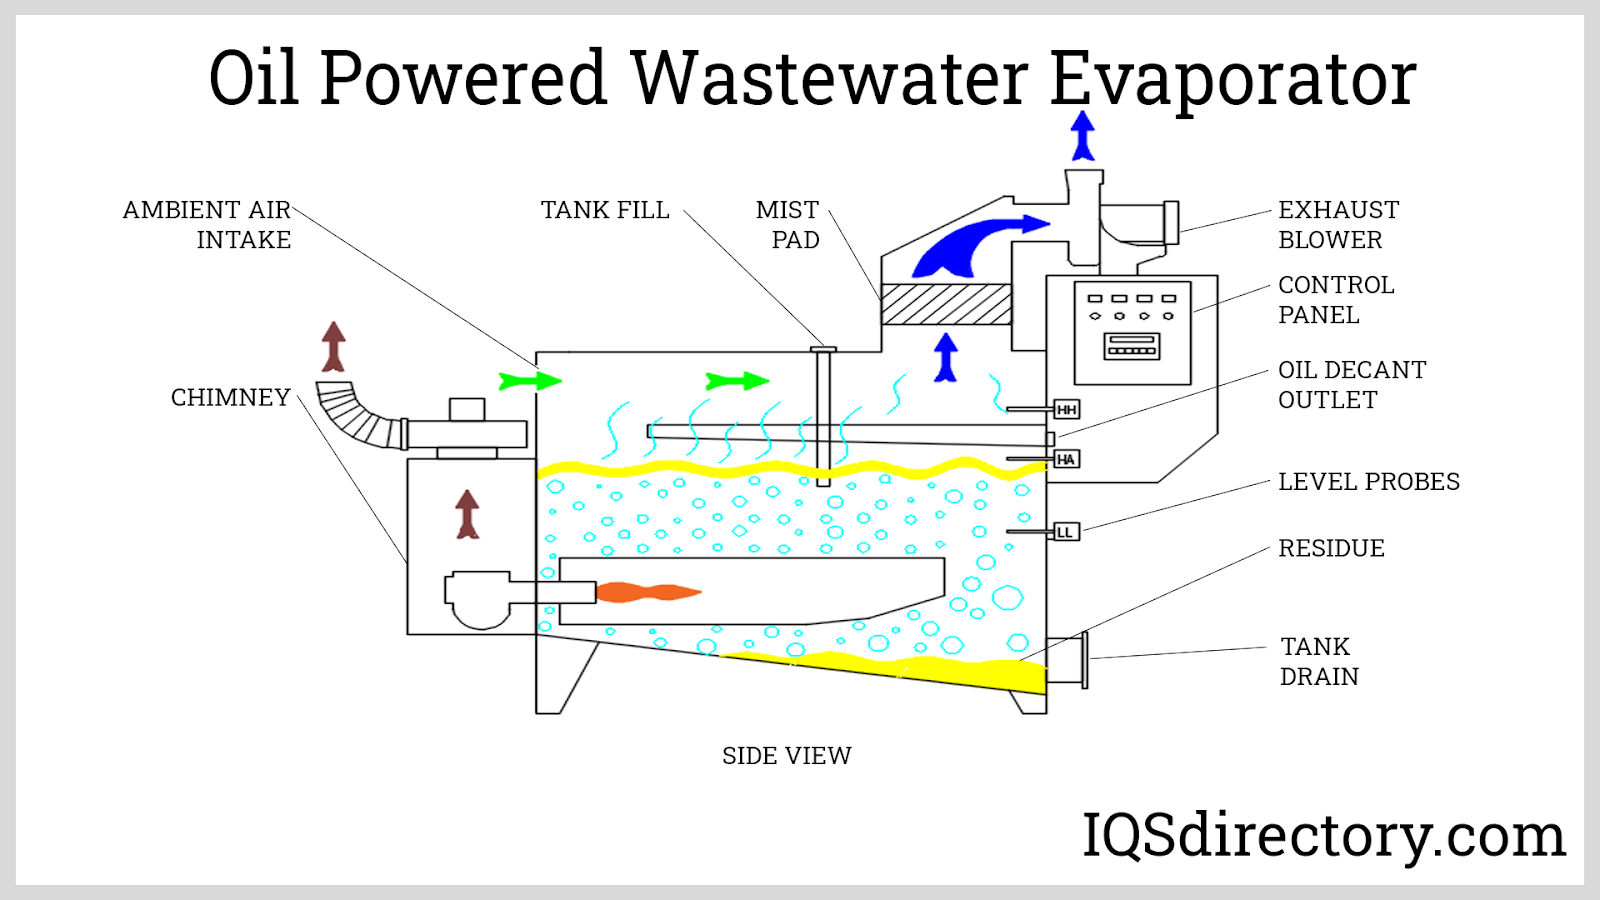 Oil Powered Wastewater Evaporator